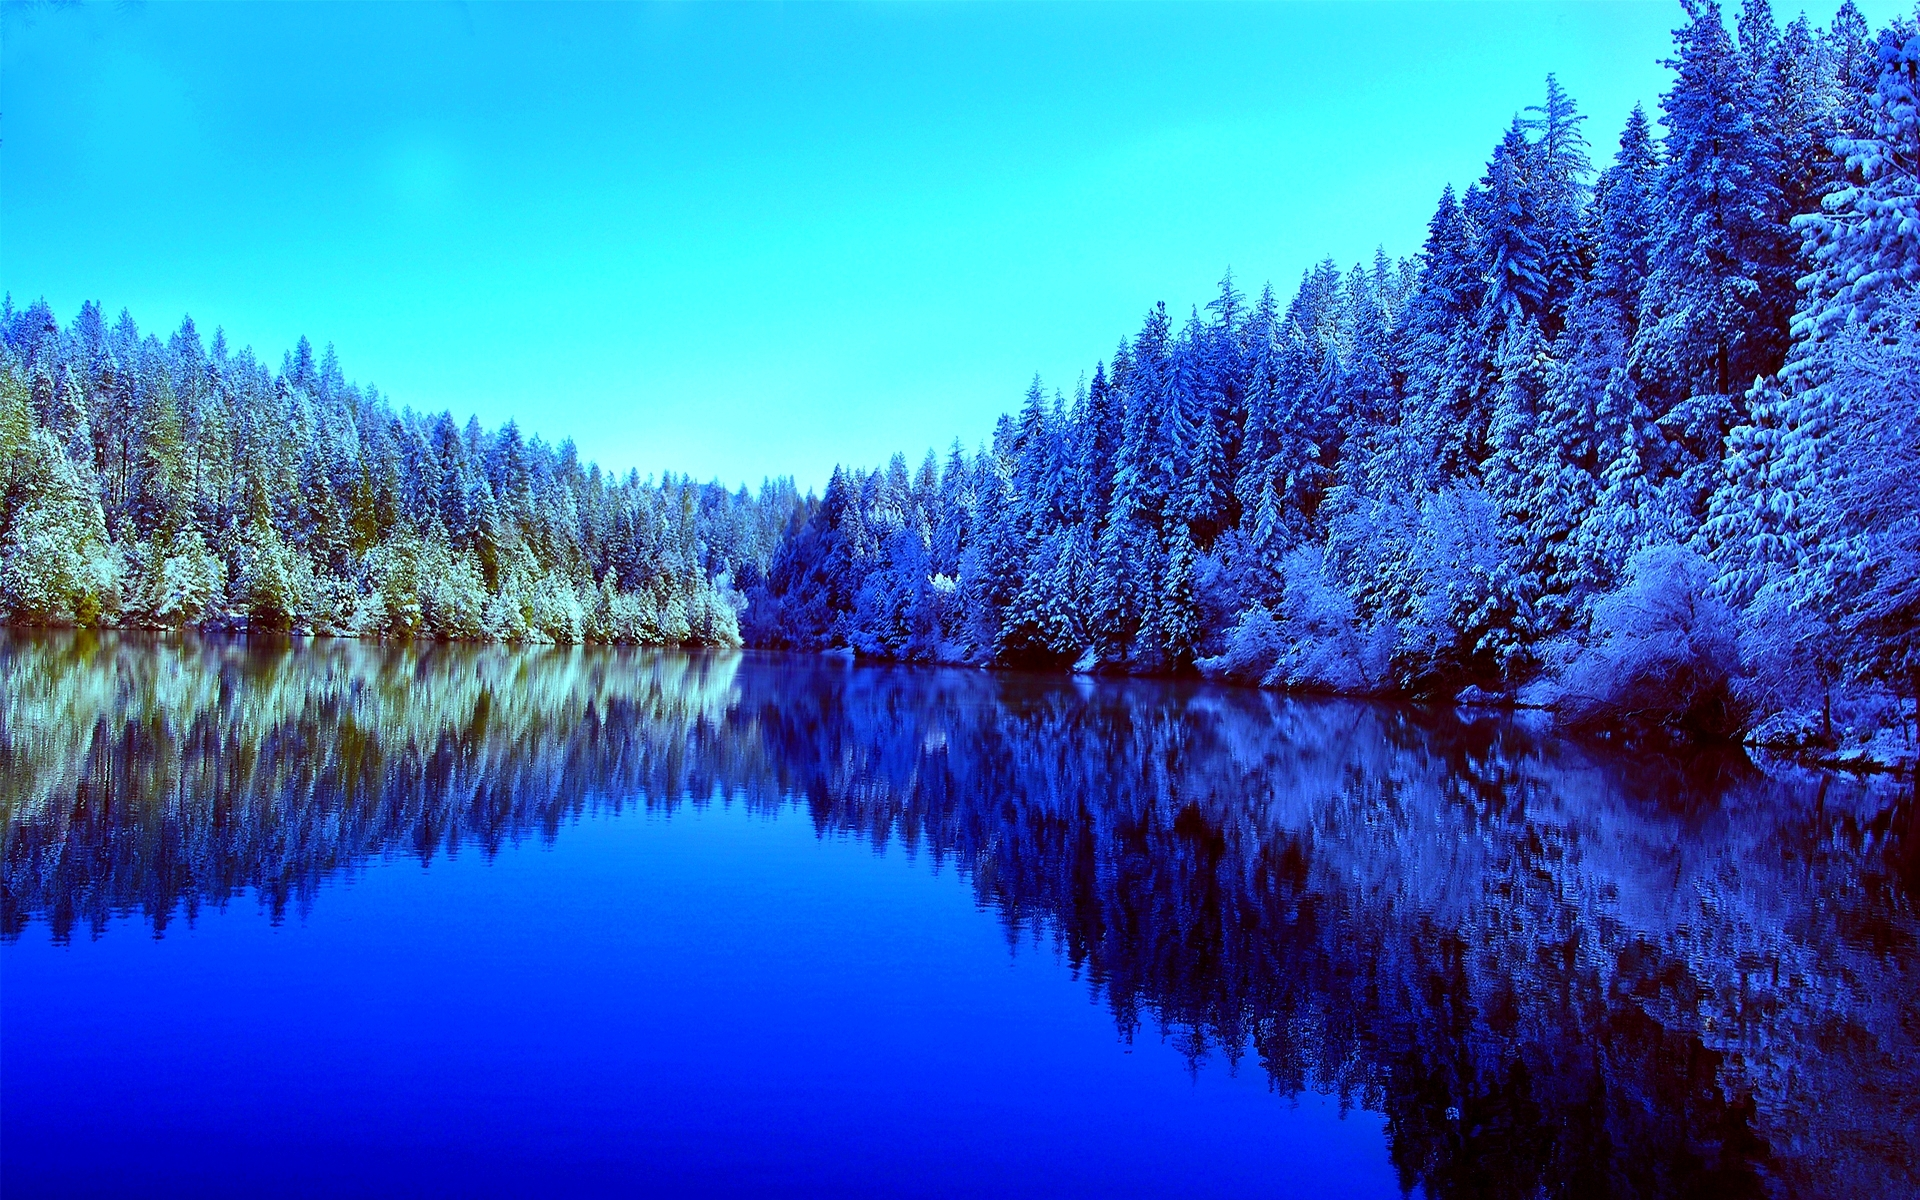 frosty wallpaper river nature